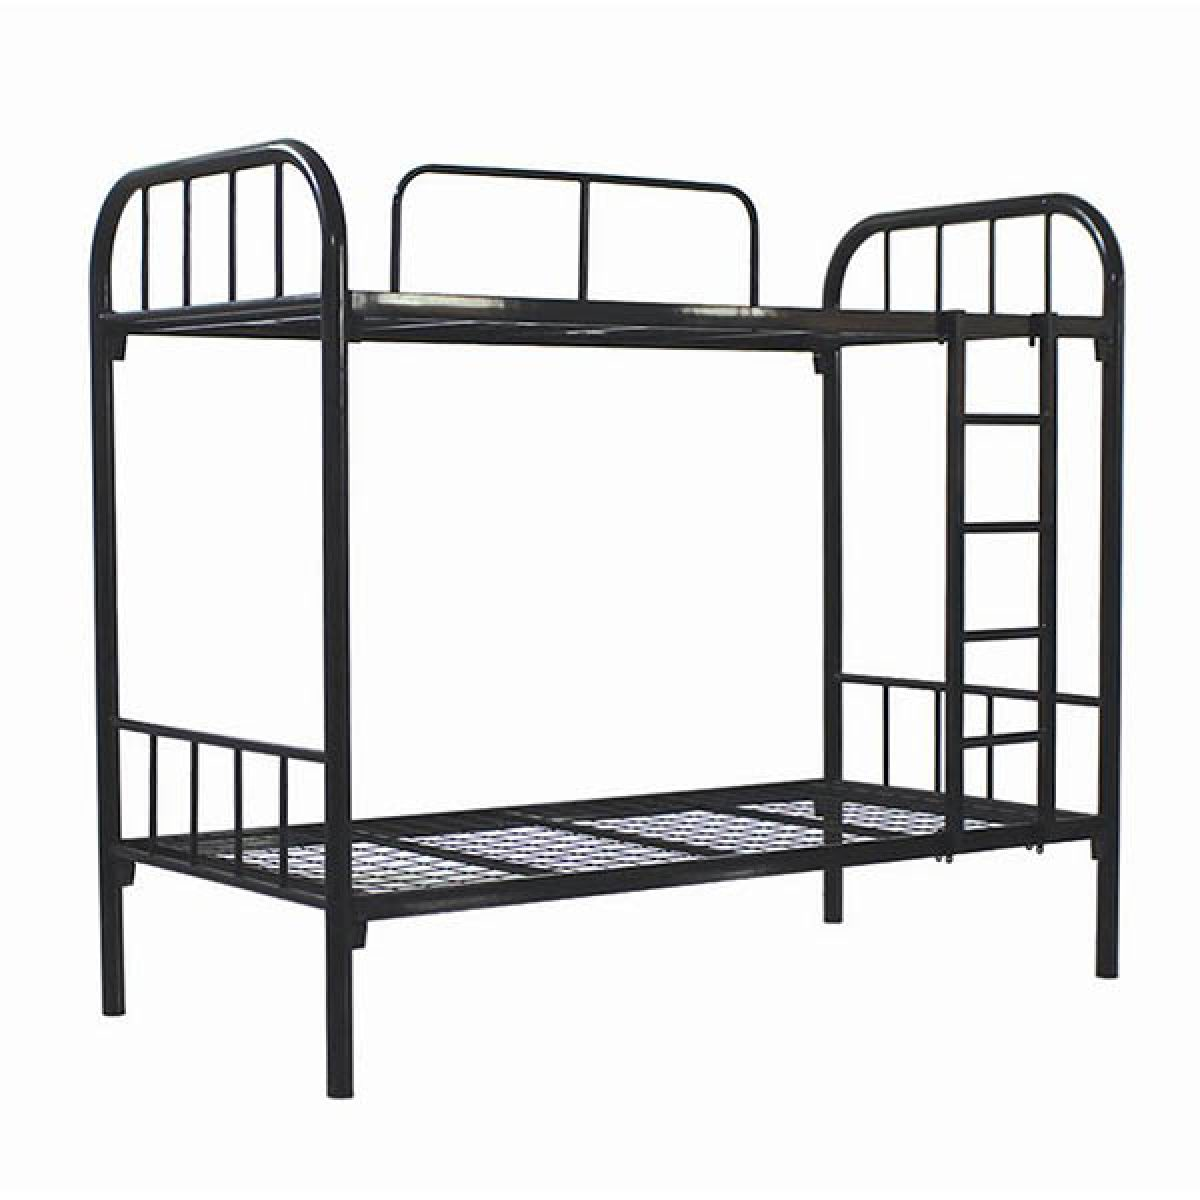 Picture of: Bunk Beds Safe For Adults Ability Trading In Uae